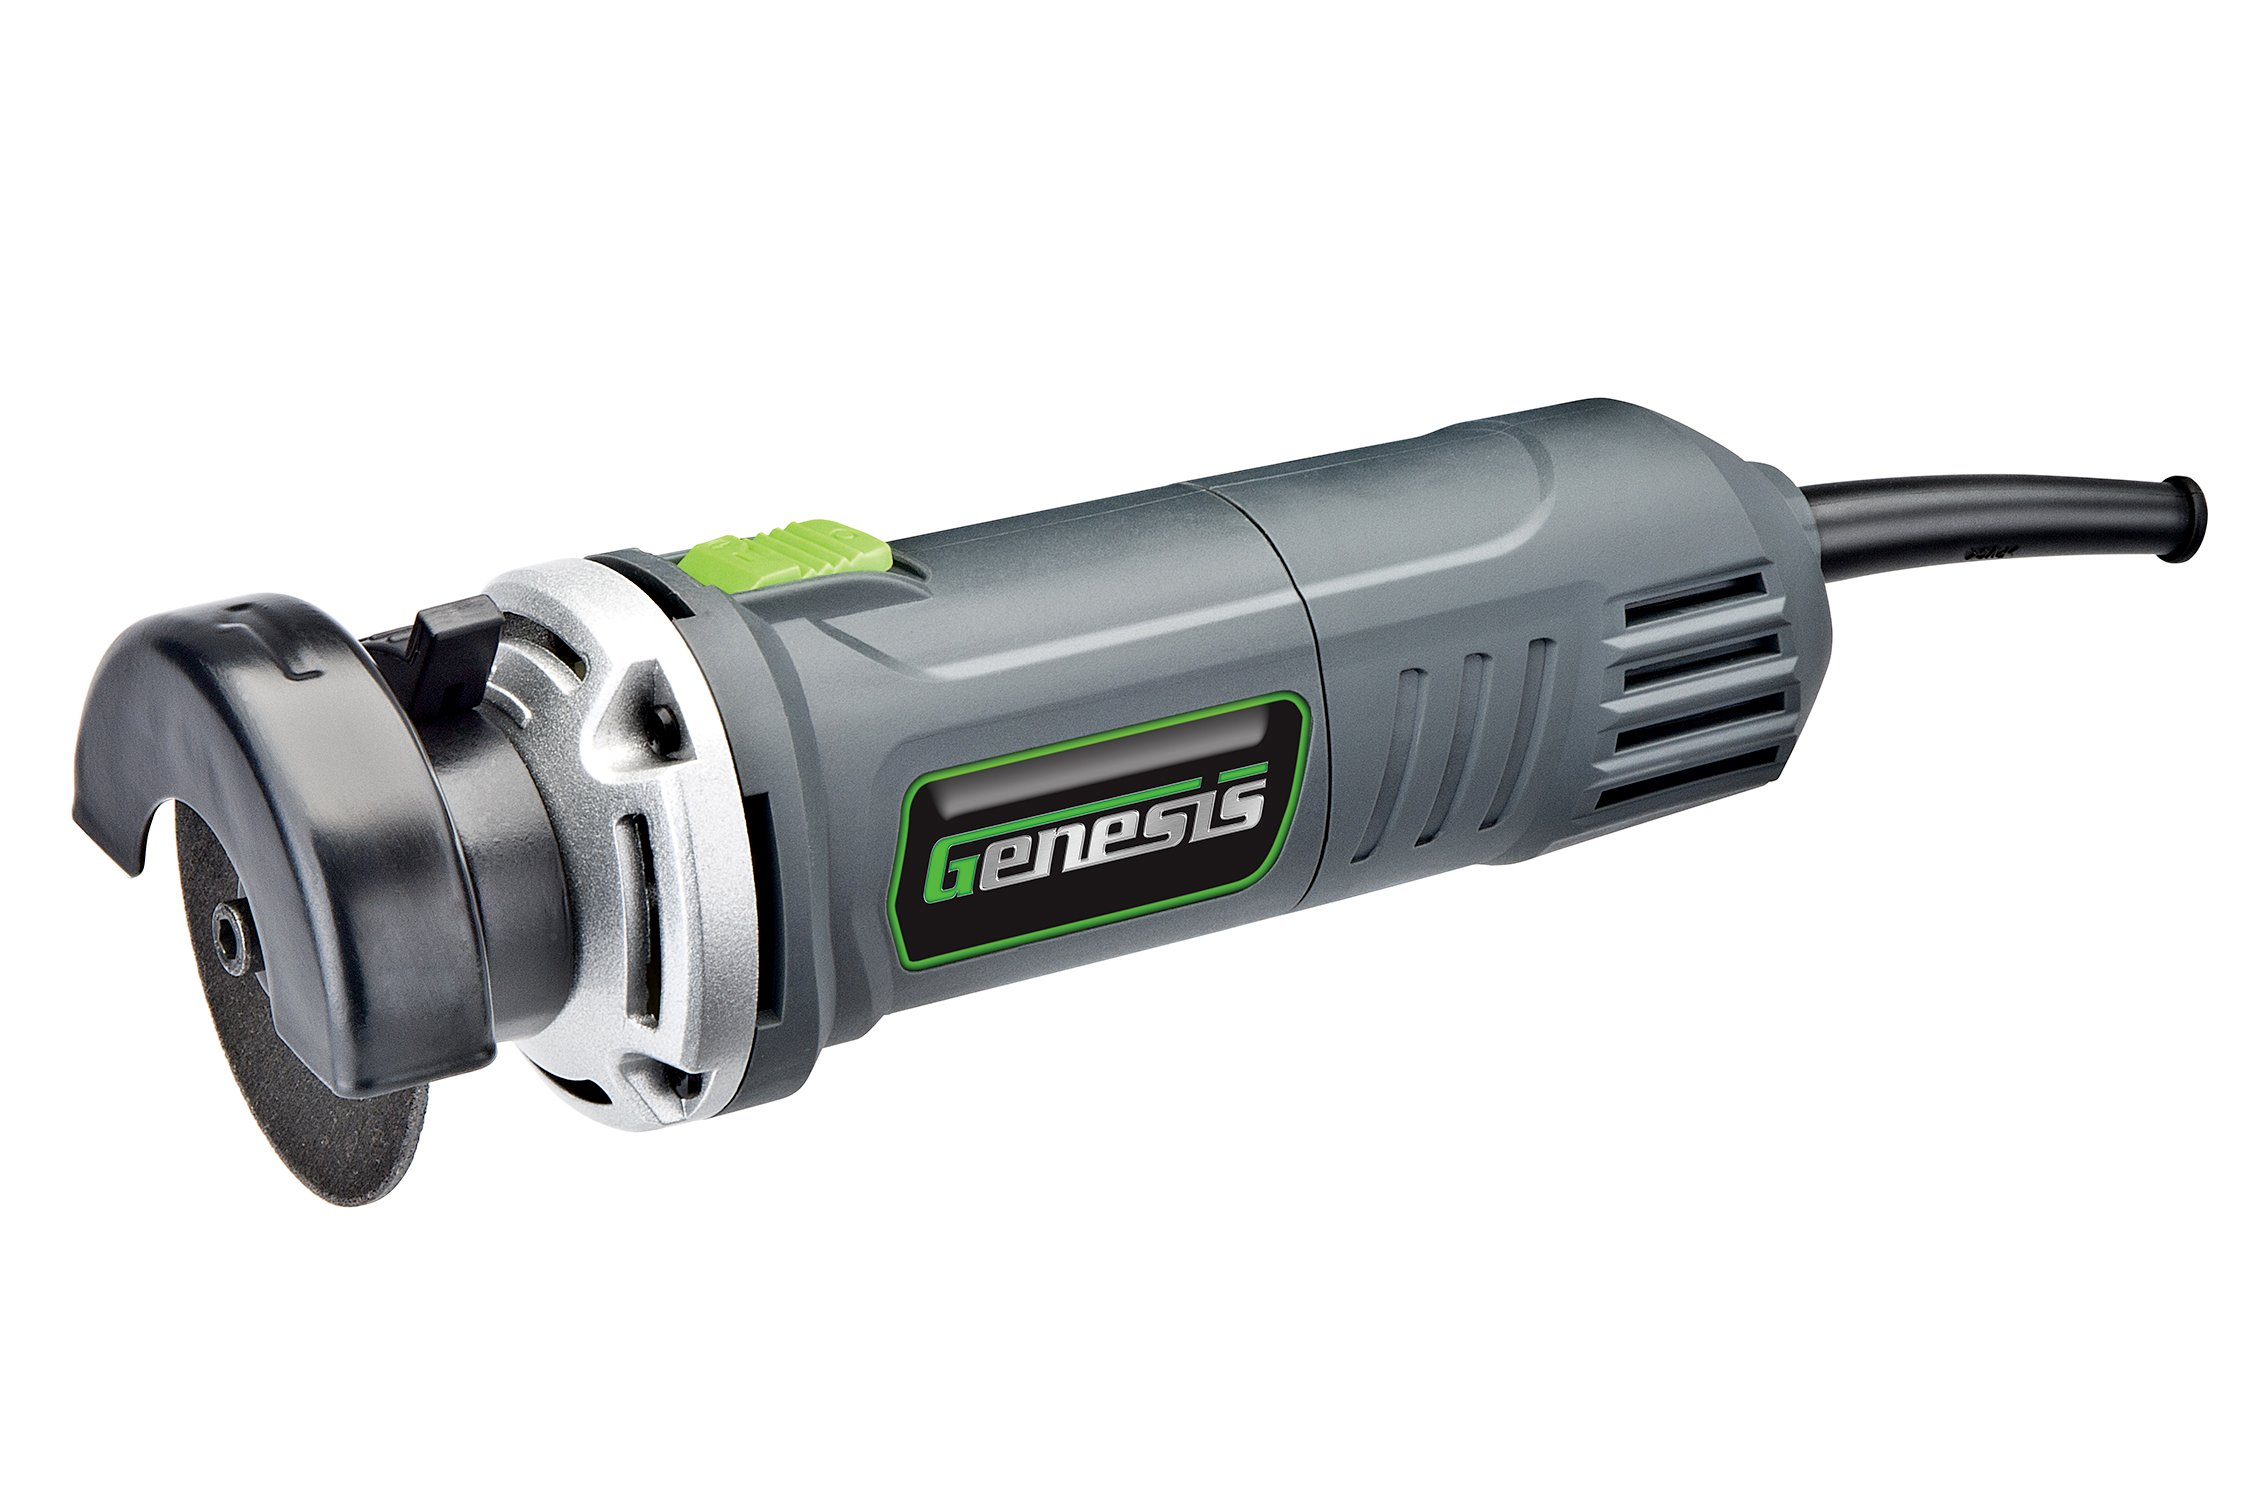 """Genesis GCOT335 3"""" 3.5 Amp High Speed Corded Cut Off Tool with Quick-Release Adjustable Guard and Safety Switch"""